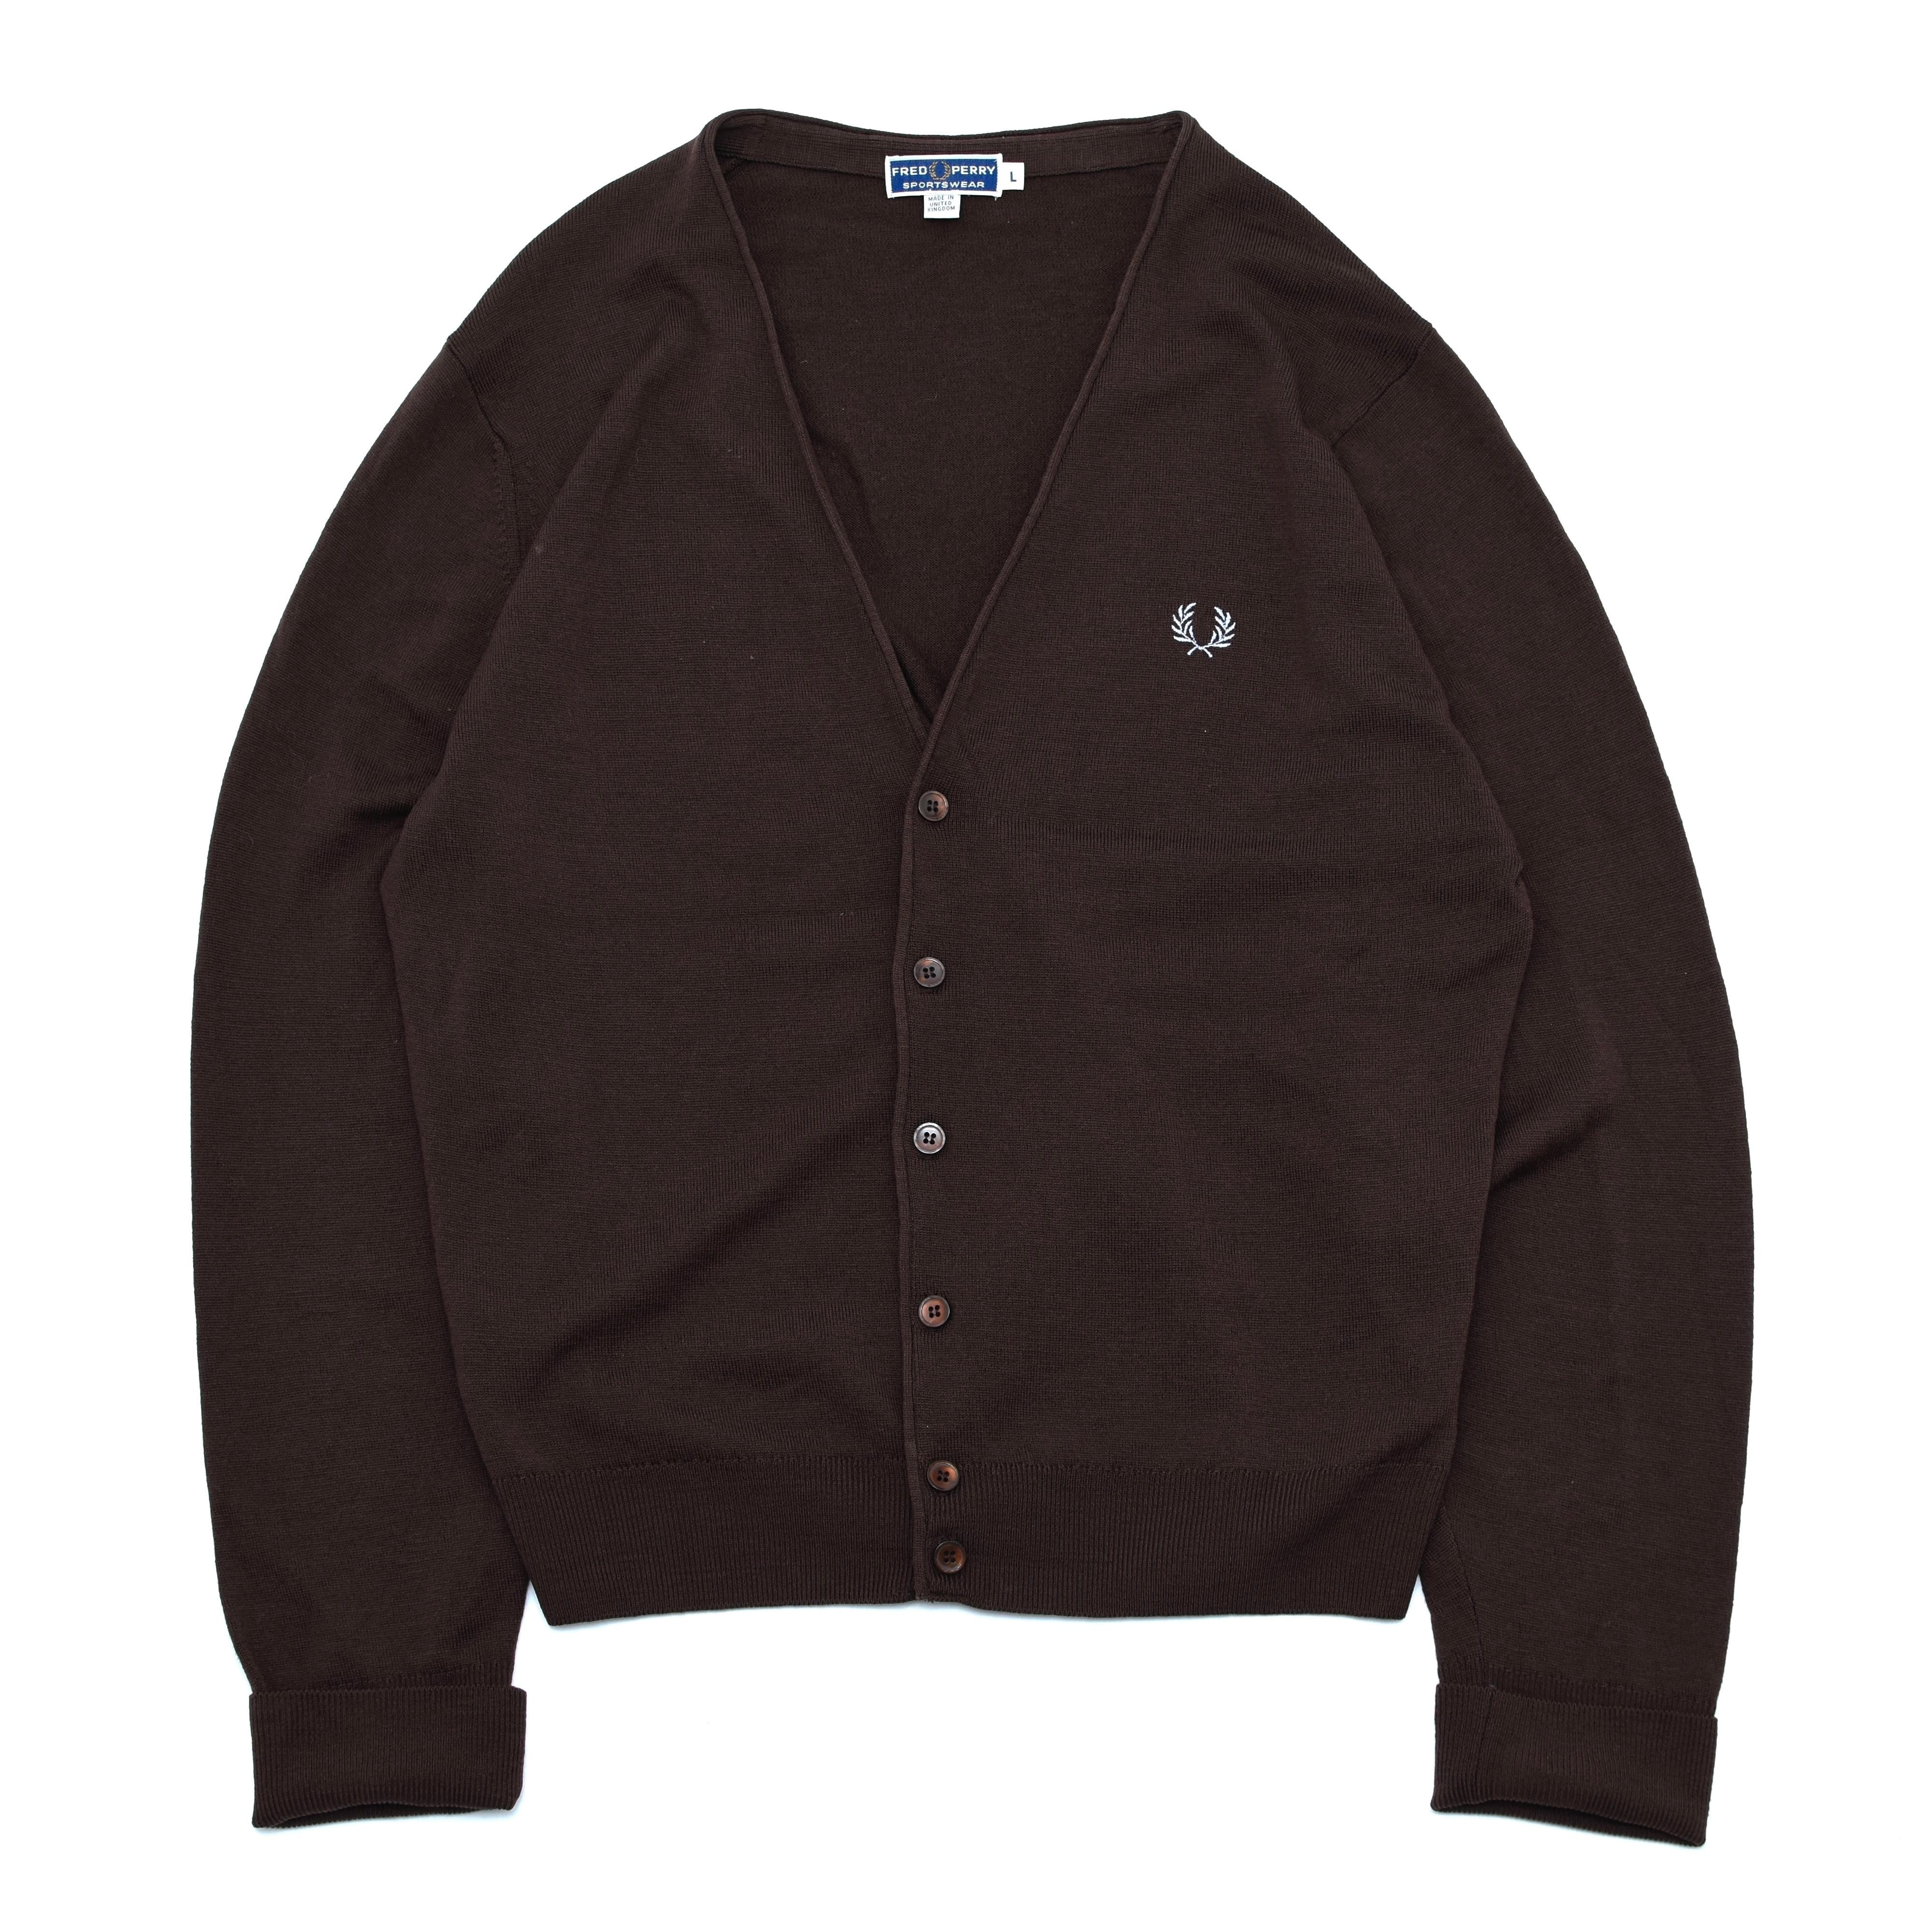 Made in U.K Fred Perry knit cardigan